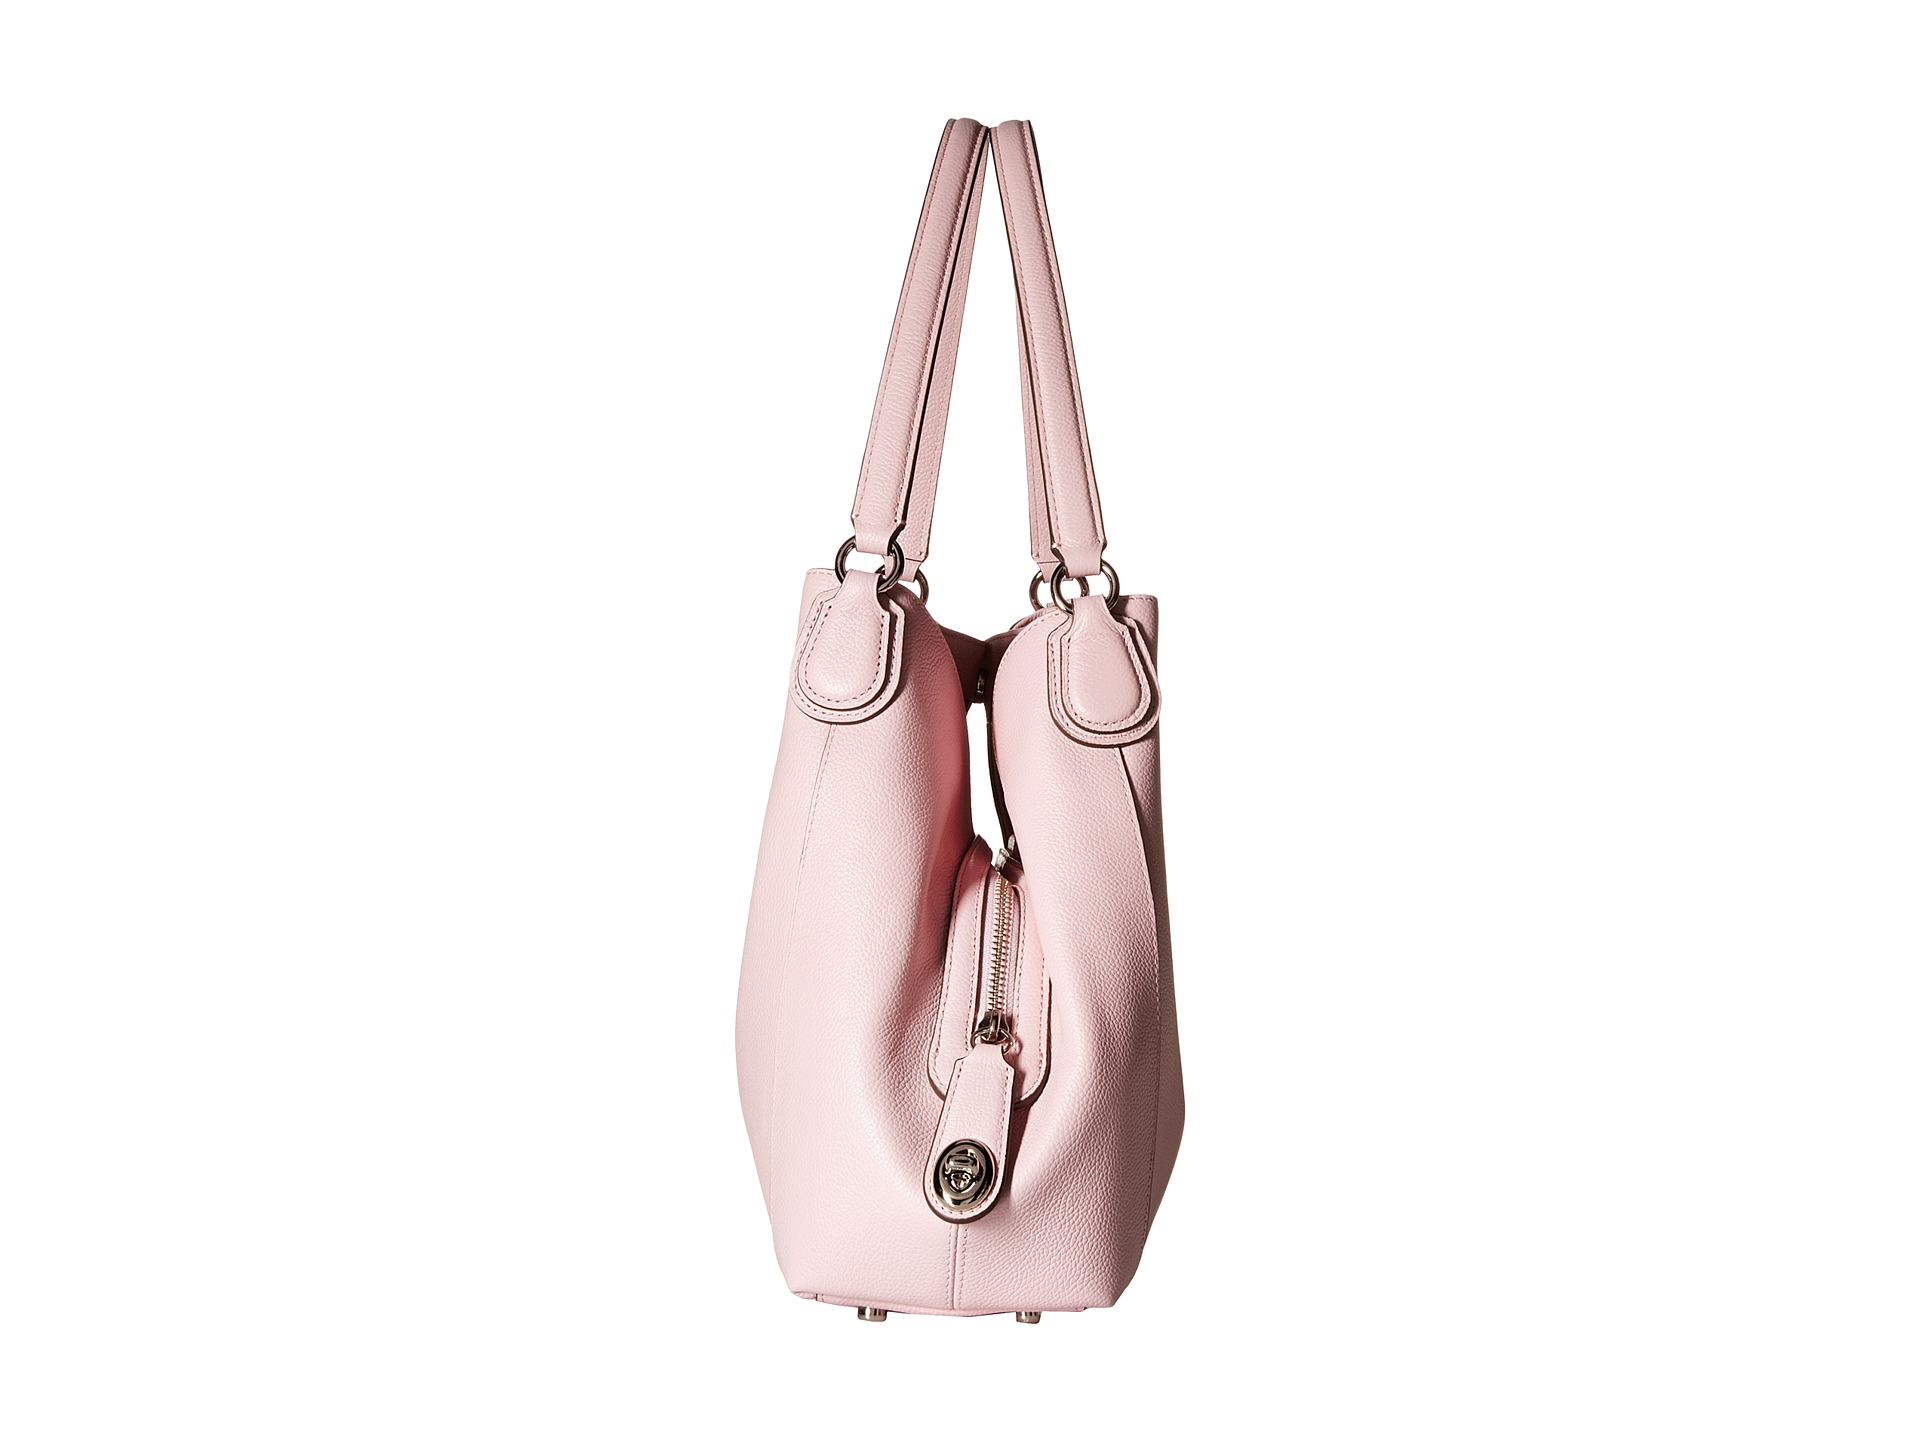 dcc38b4821 ... buy lyst coach refined pebble leather edie 31 shoulder bag in pink  3822d 3e8a9